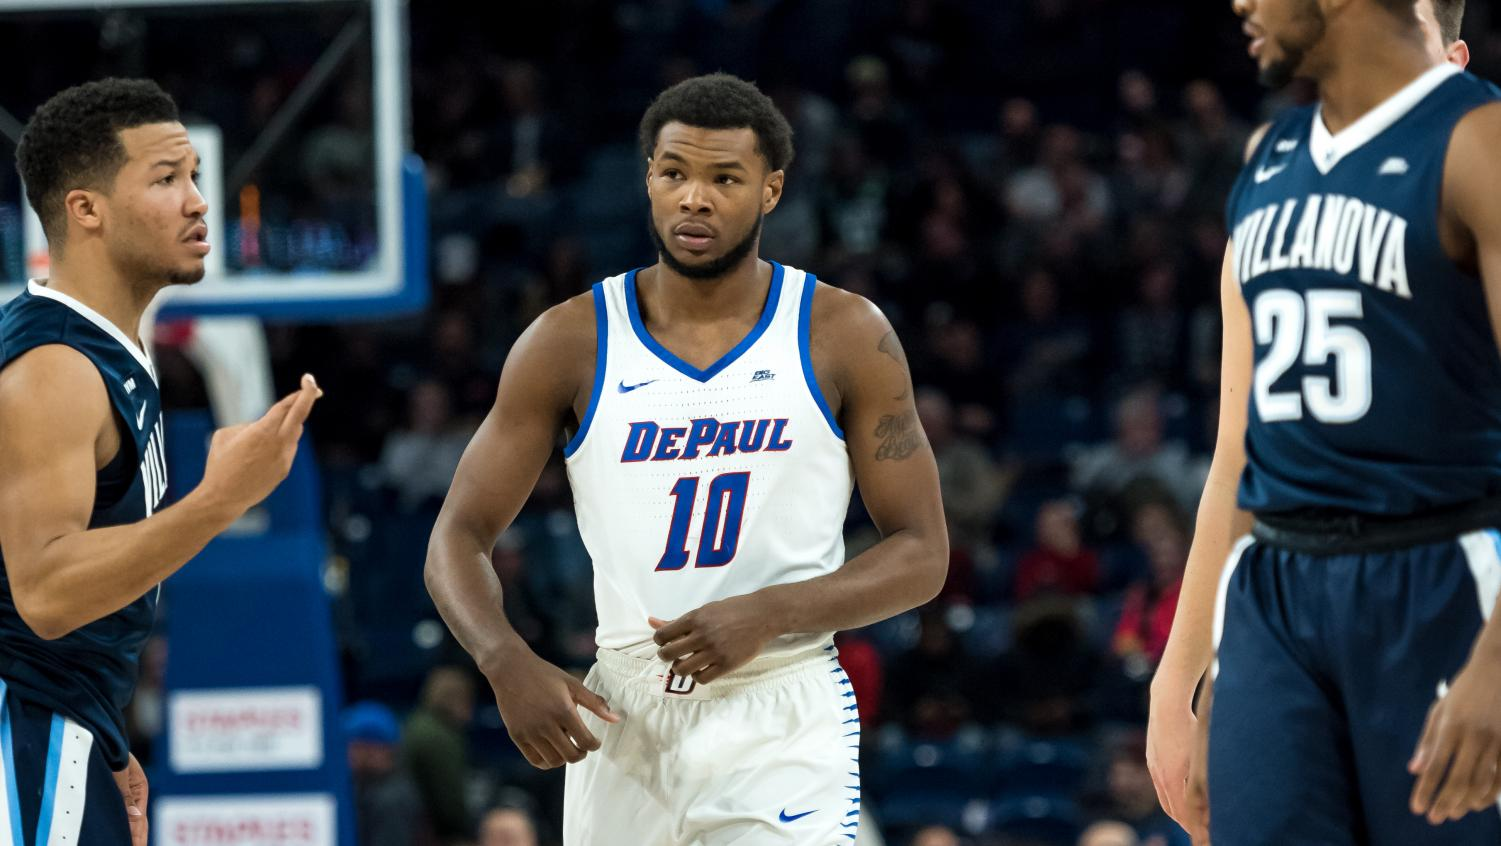 Tre'Darius McCallum received a technical after slamming the ball into the court in an outburst of frustration Monday night at Marquette. (Konrad Markowski)